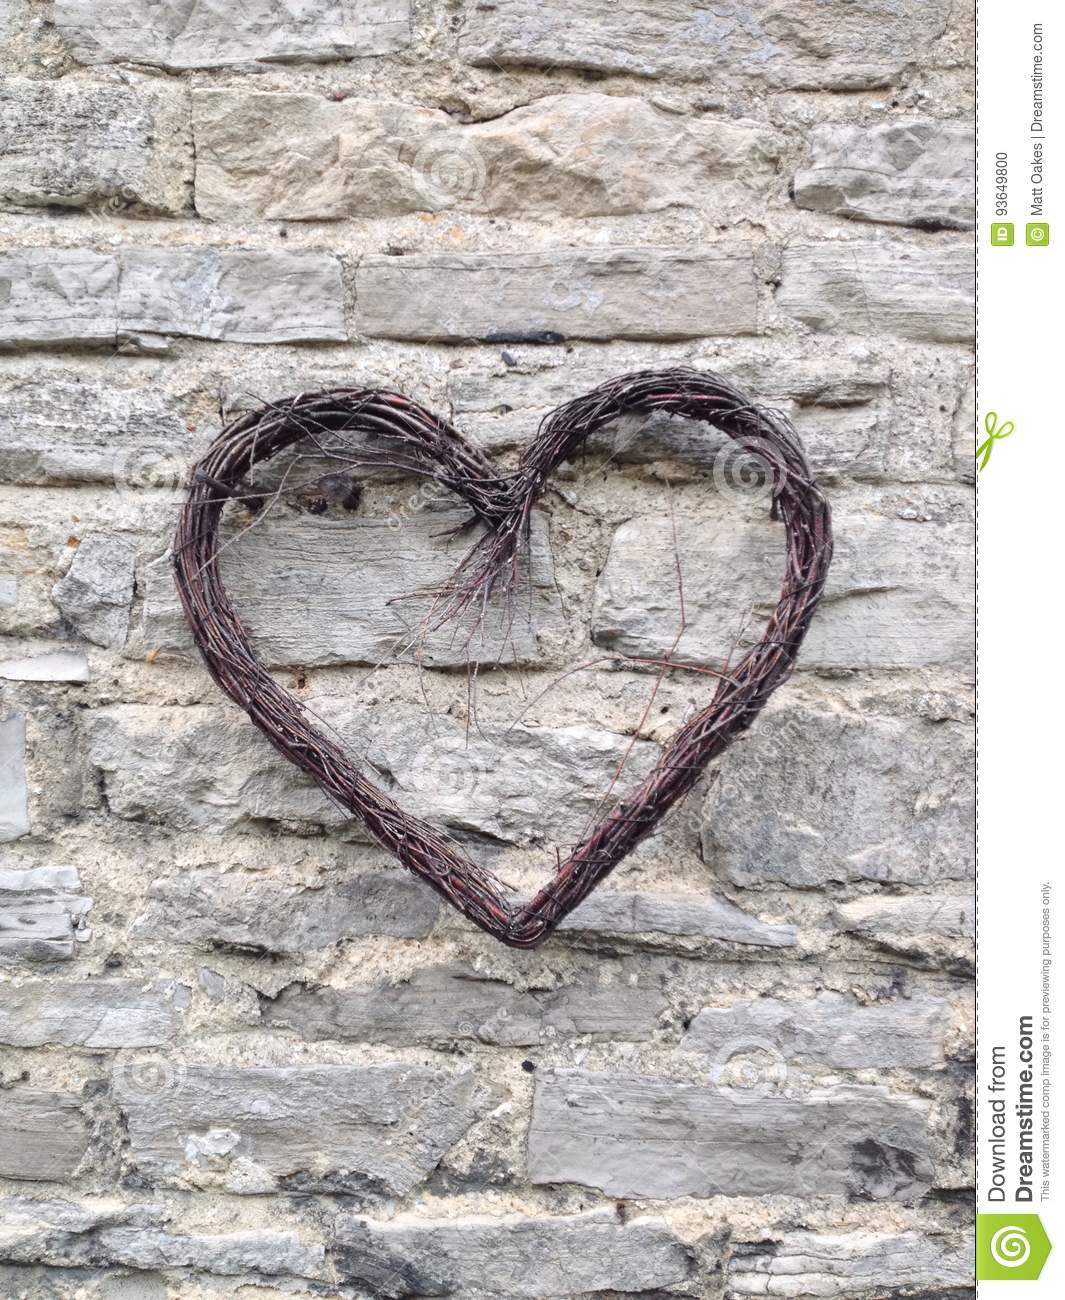 The heart on the wall  stock photo  Image of romance - 93649800